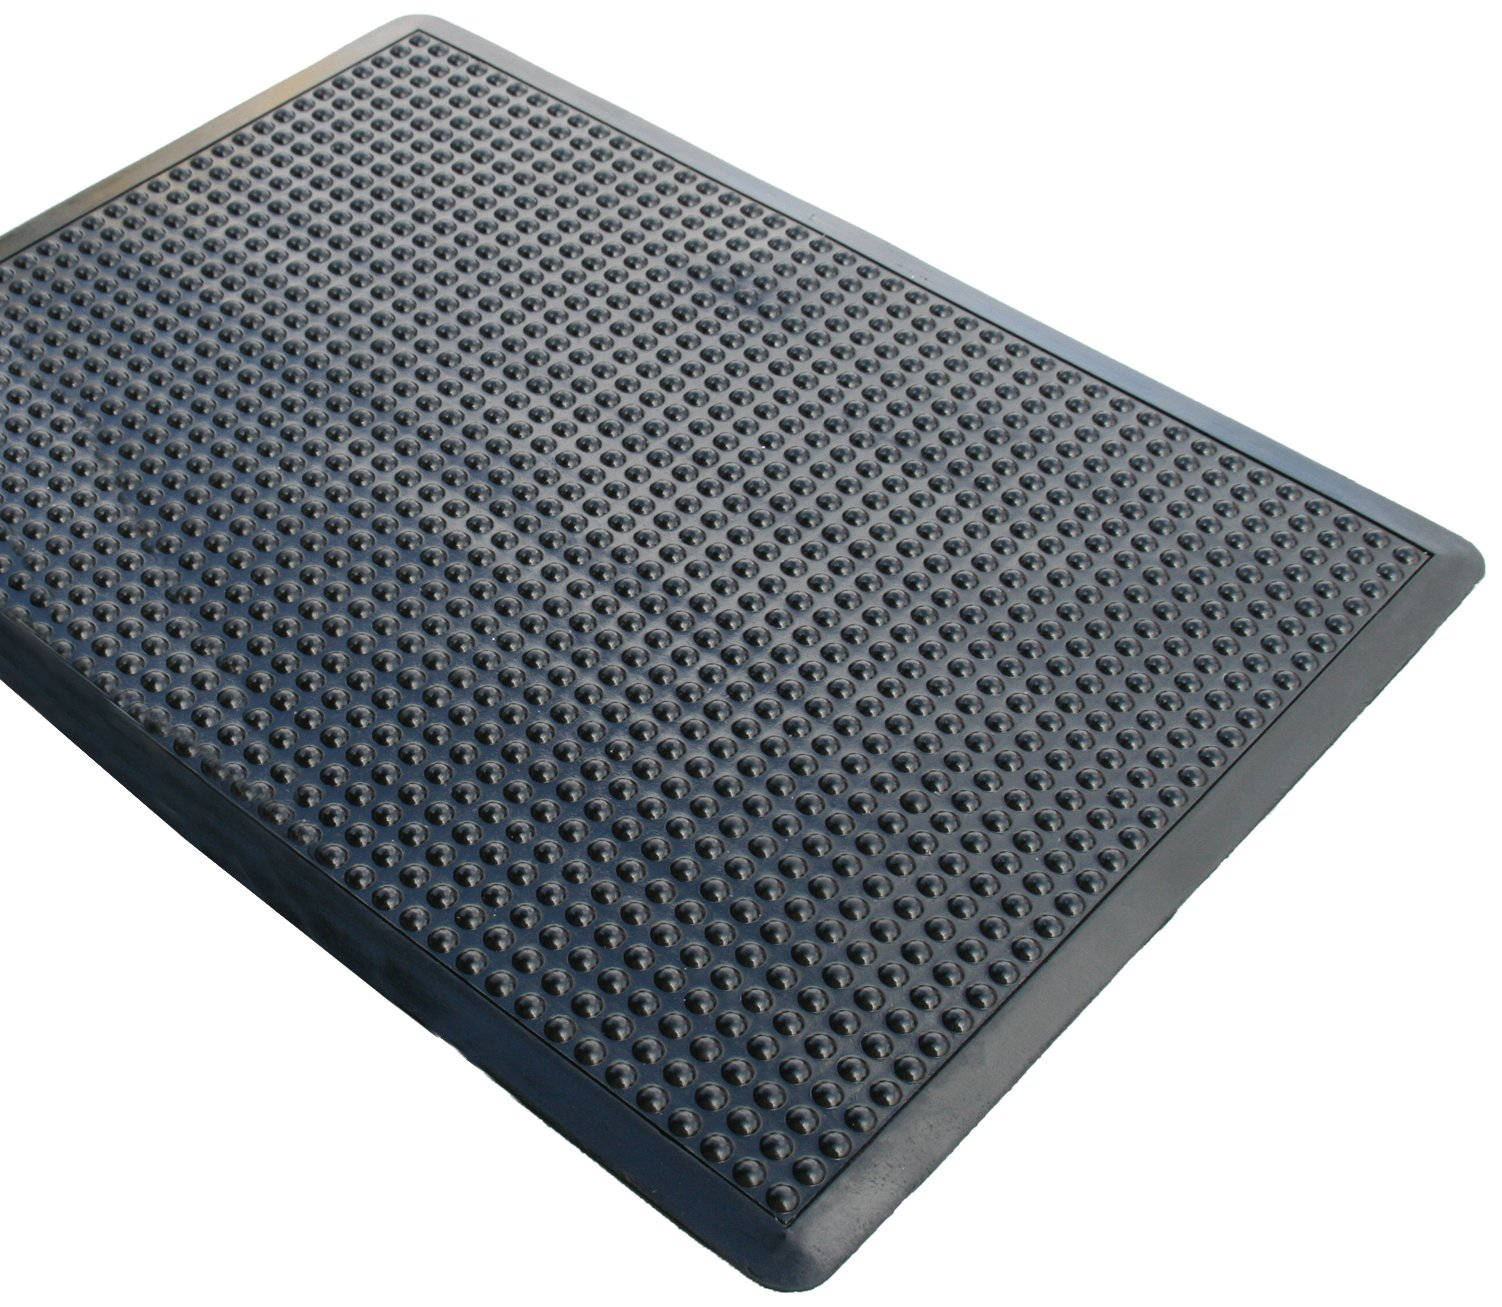 Rhino Mats UD3648S Ultra-Dome Workstation Anti-Fatigue Welding Mat, 3' Width x 4' Length x 3/4'' Thickness, Black